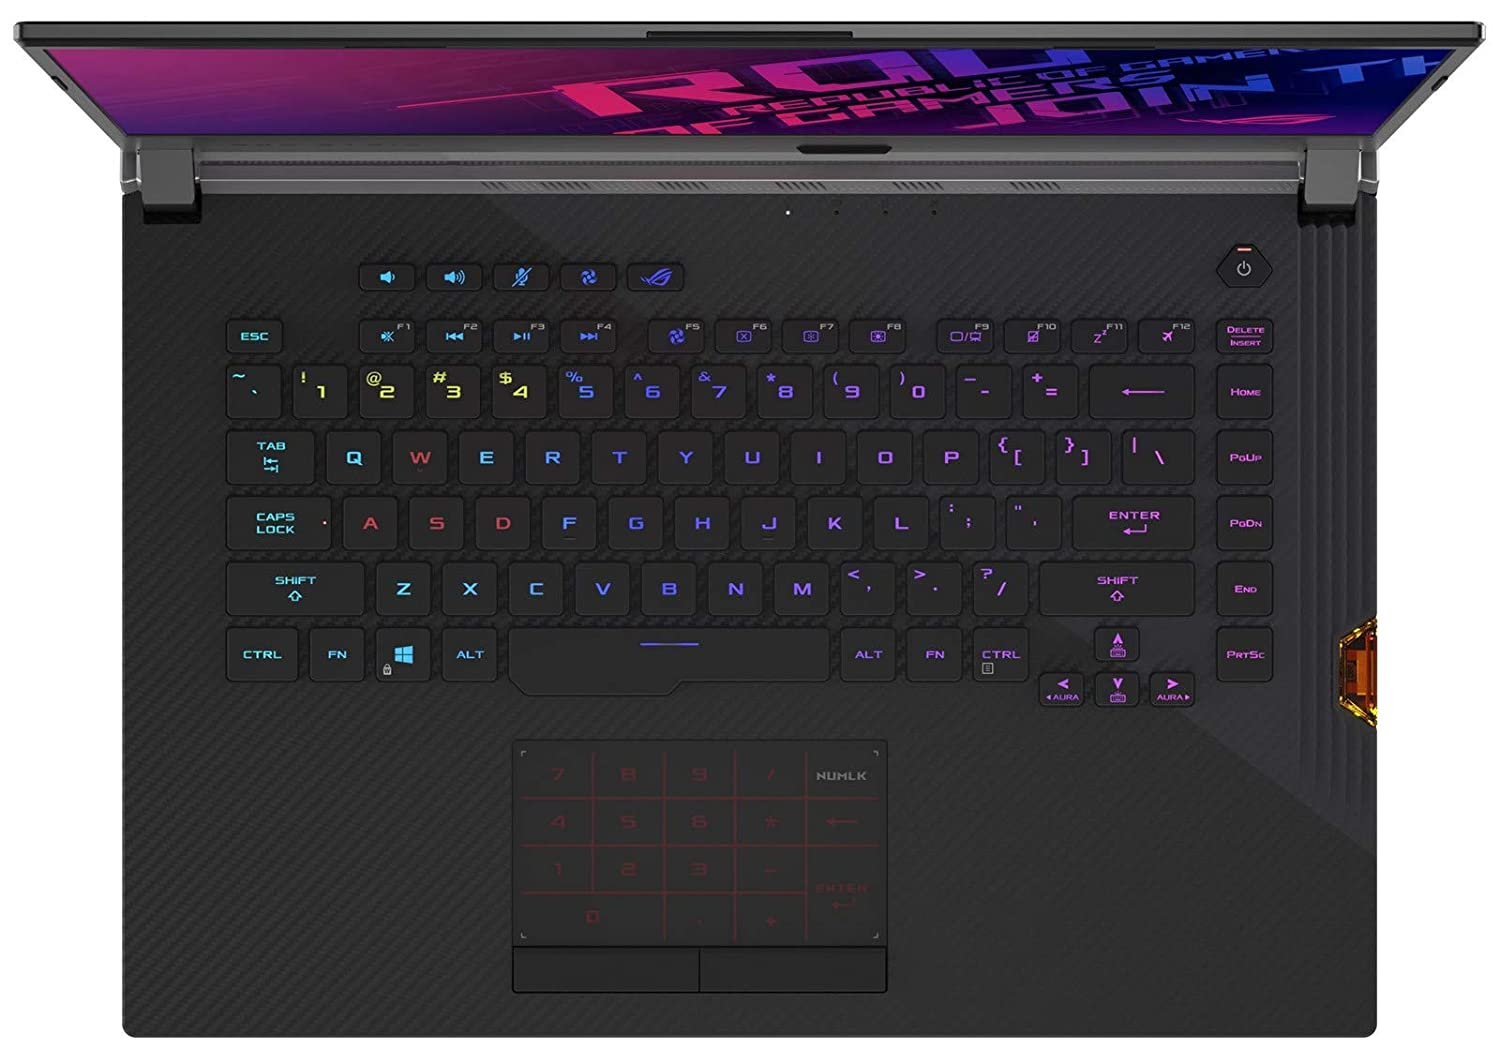 ASUS ROG Strix Scar III G531GW-XB96 i9-9880H, 32GB RAM, 1TB NVMe SSD 1TB SSHD, NVIDIA RTX 2070 8GB, 15.6 Full HD 240Hz 3ms, Windows 10 Pro VR Ready Gaming Notebook